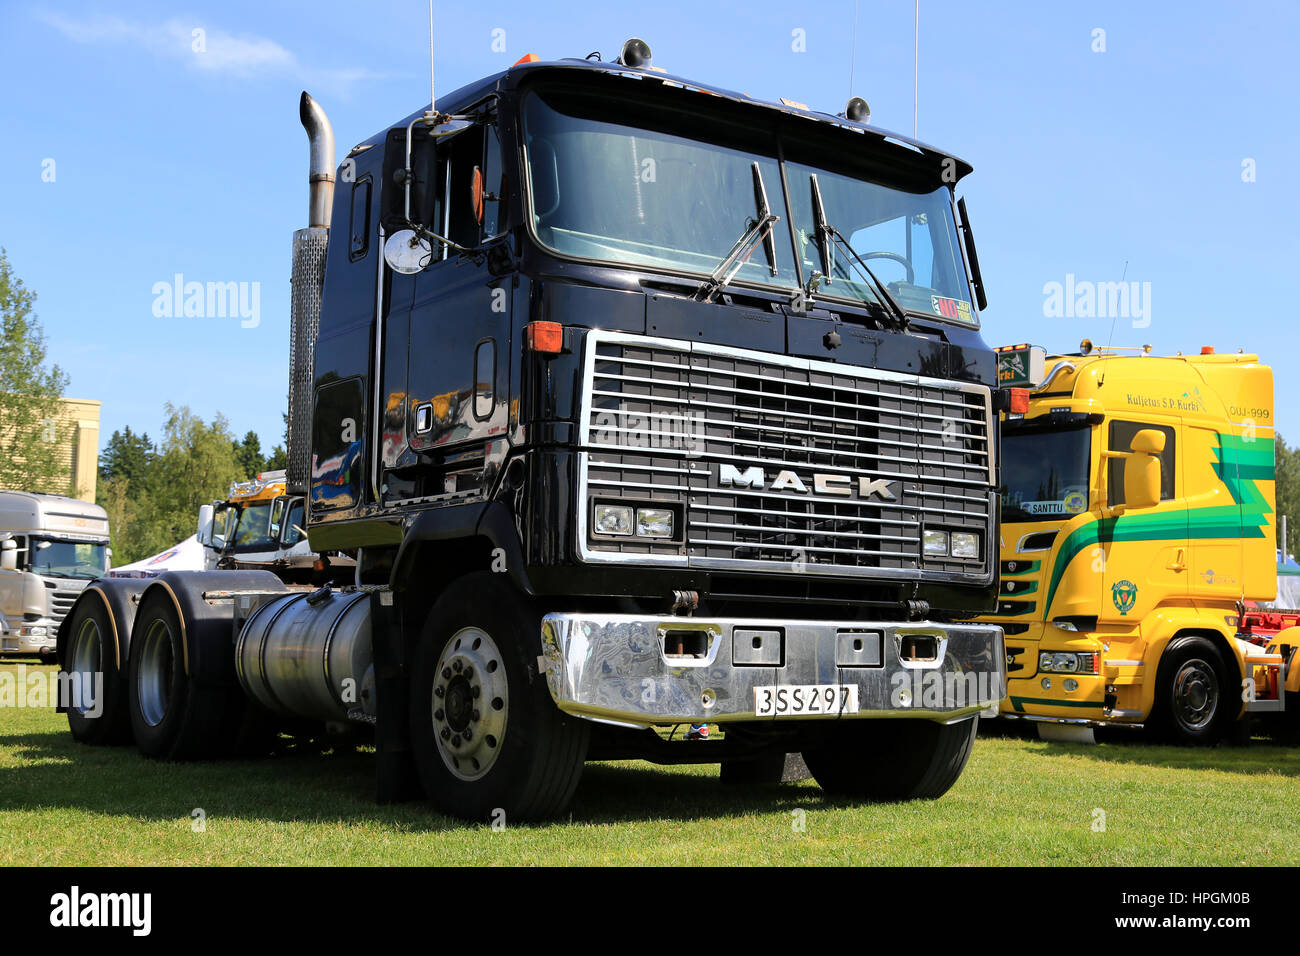 Diesel Truck Mack Stock Photos & Diesel Truck Mack Stock Images - Alamy